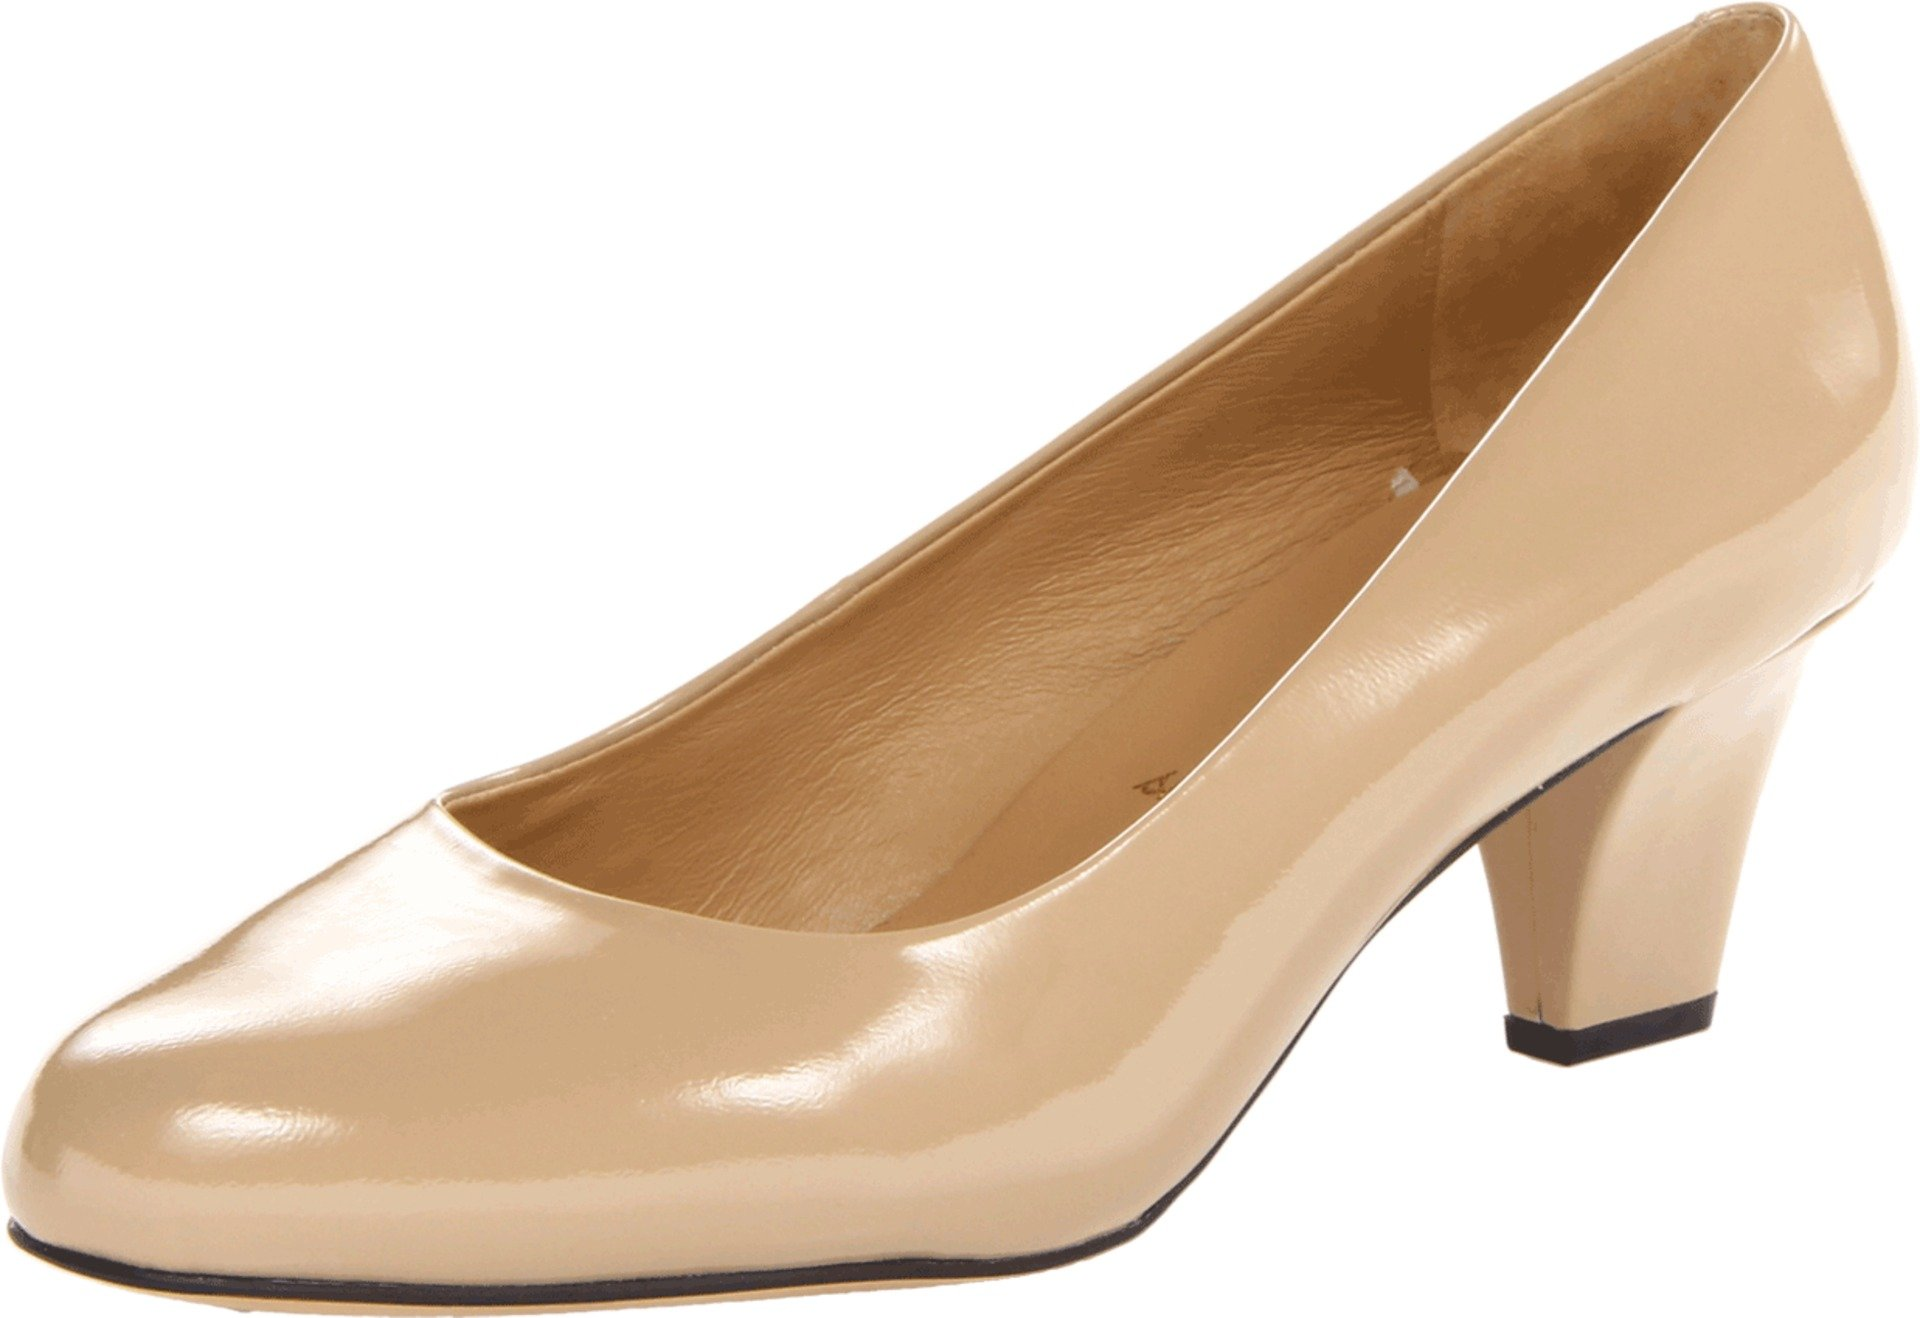 Trotters Women's Penelope Pump,Nude Patent,8.5 M US